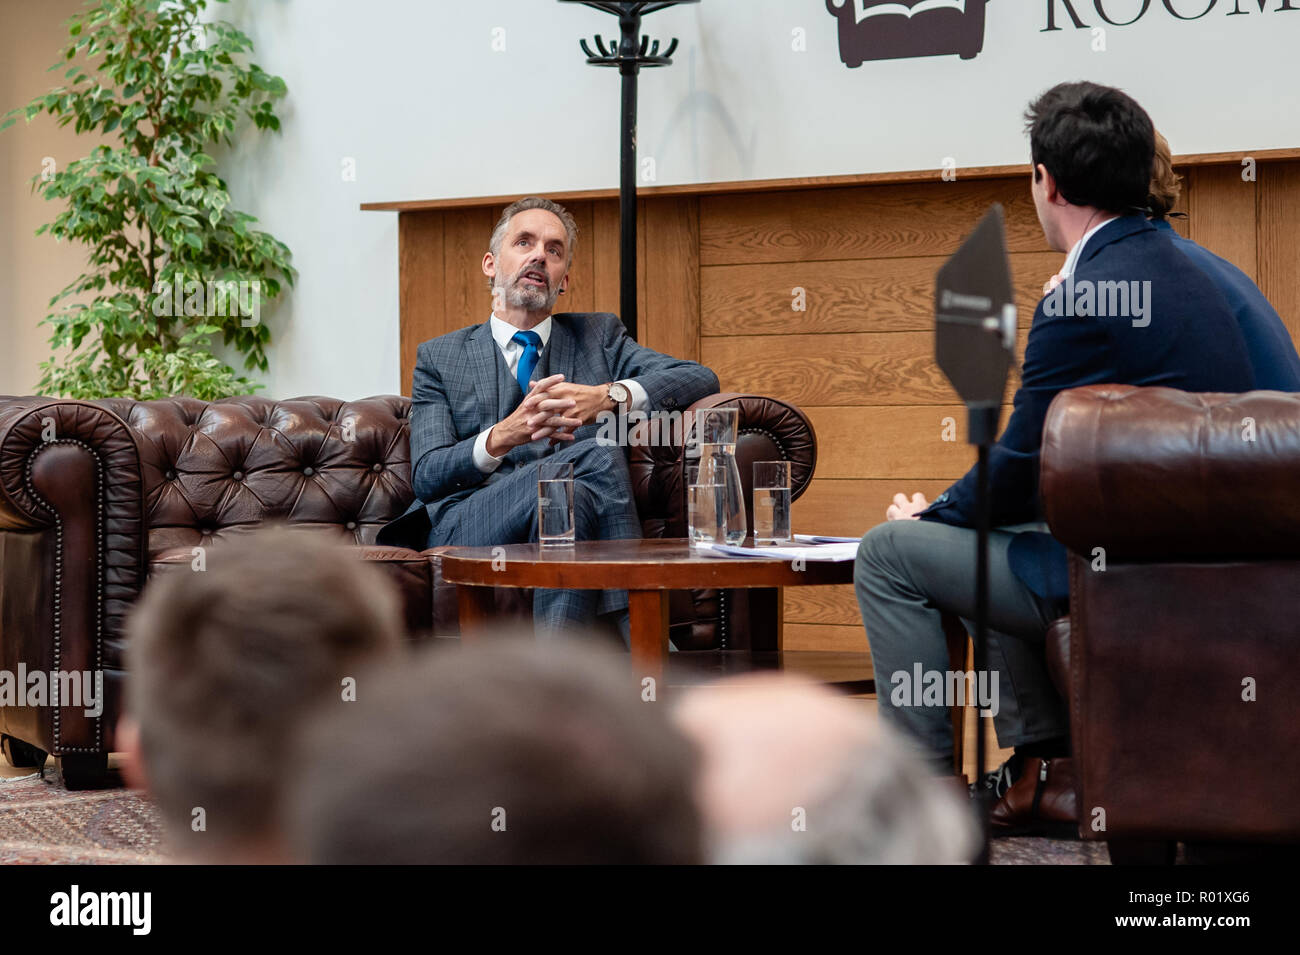 Amsterdam, The Netherlands. 31st Oct 2018. Dr. Jordan B Peterson is a Professor of Psychology at the University of Toronto, a clinical psychologist, a public speaker, and a creator of Self Authoring. He is widely known because of his influential but also controversial analyses from current social and political problems. Inviting the Canadian psychologist Jordan Peterson in the UvA interview series 'Room for Discussion' elicited an angry protest letter signed by eighty UvA (University of Amsterdam) staff and students. Credit:  Romy Arroyo Fernandez/Alamy Live News. - Stock Image